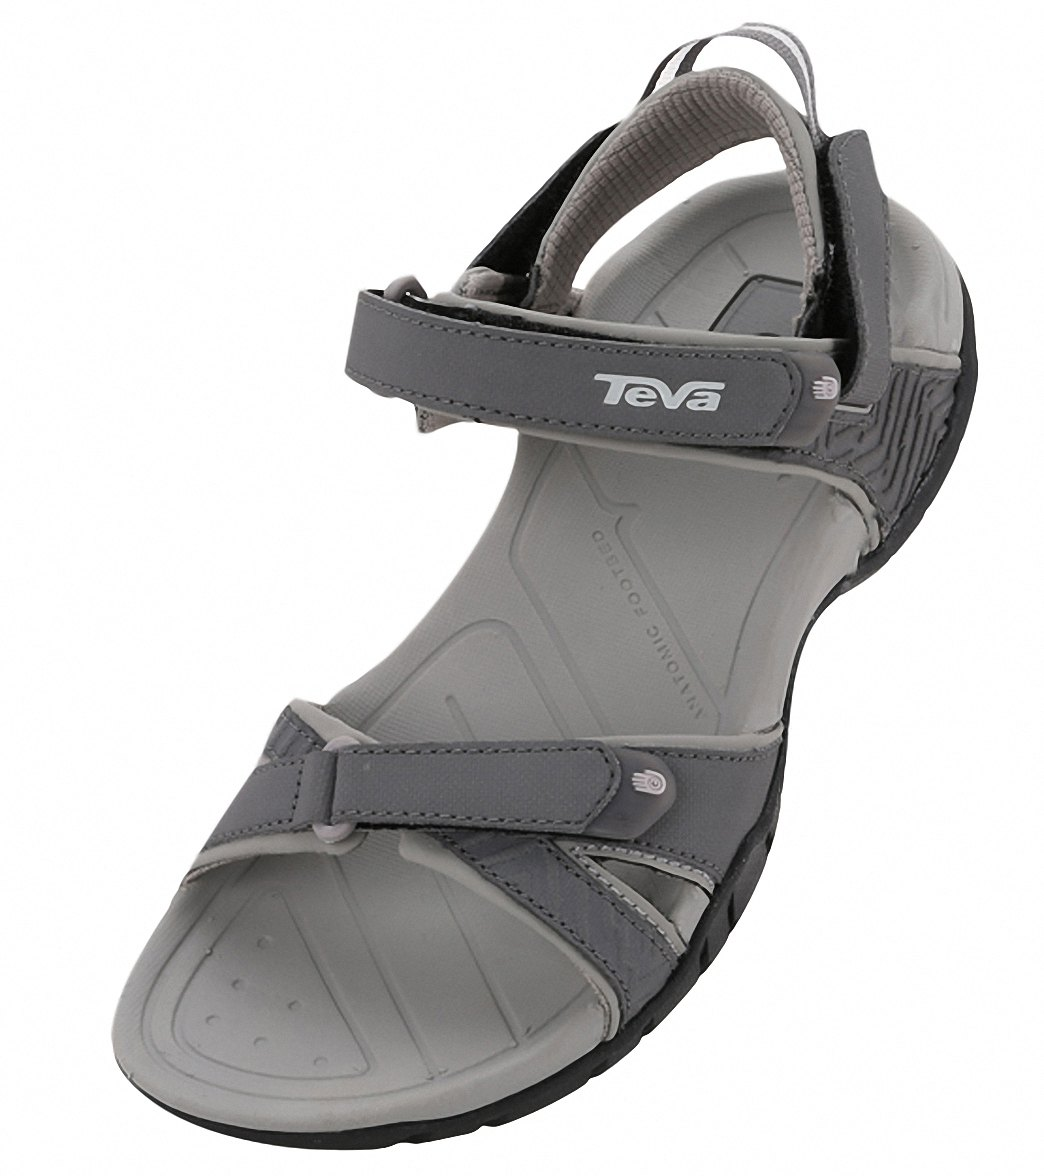 806a72357b10 Teva Women s Numa Print Sandal at SwimOutlet.com